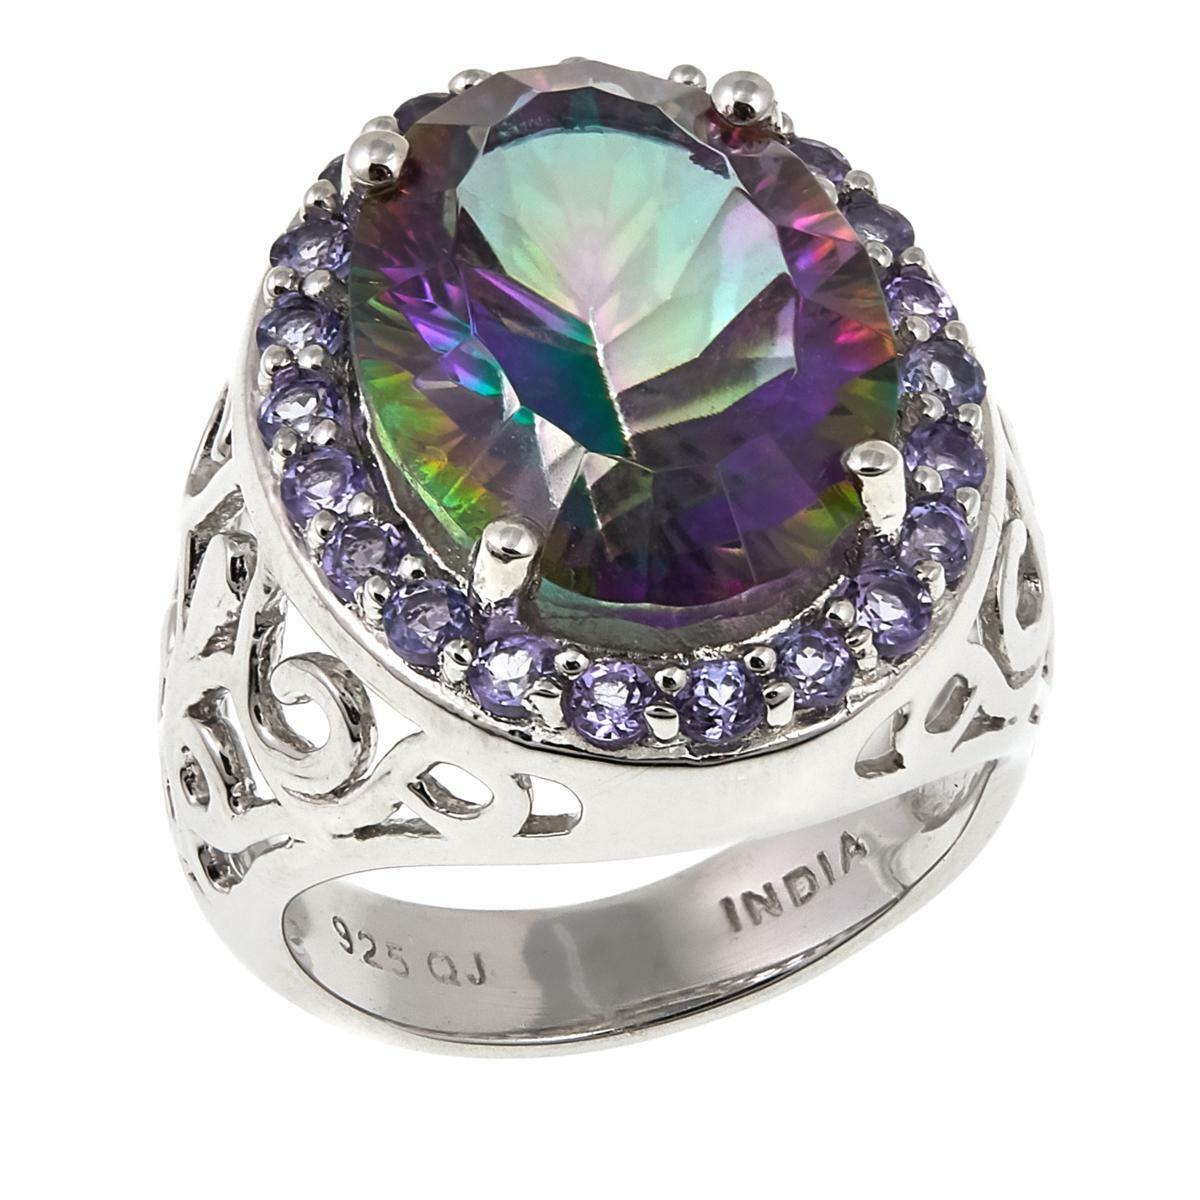 COLLEEN LOPEZ 8.70CT RAINBOW QUARTZ & TANZANITE STERLING RING SIZE 10 HSN  139